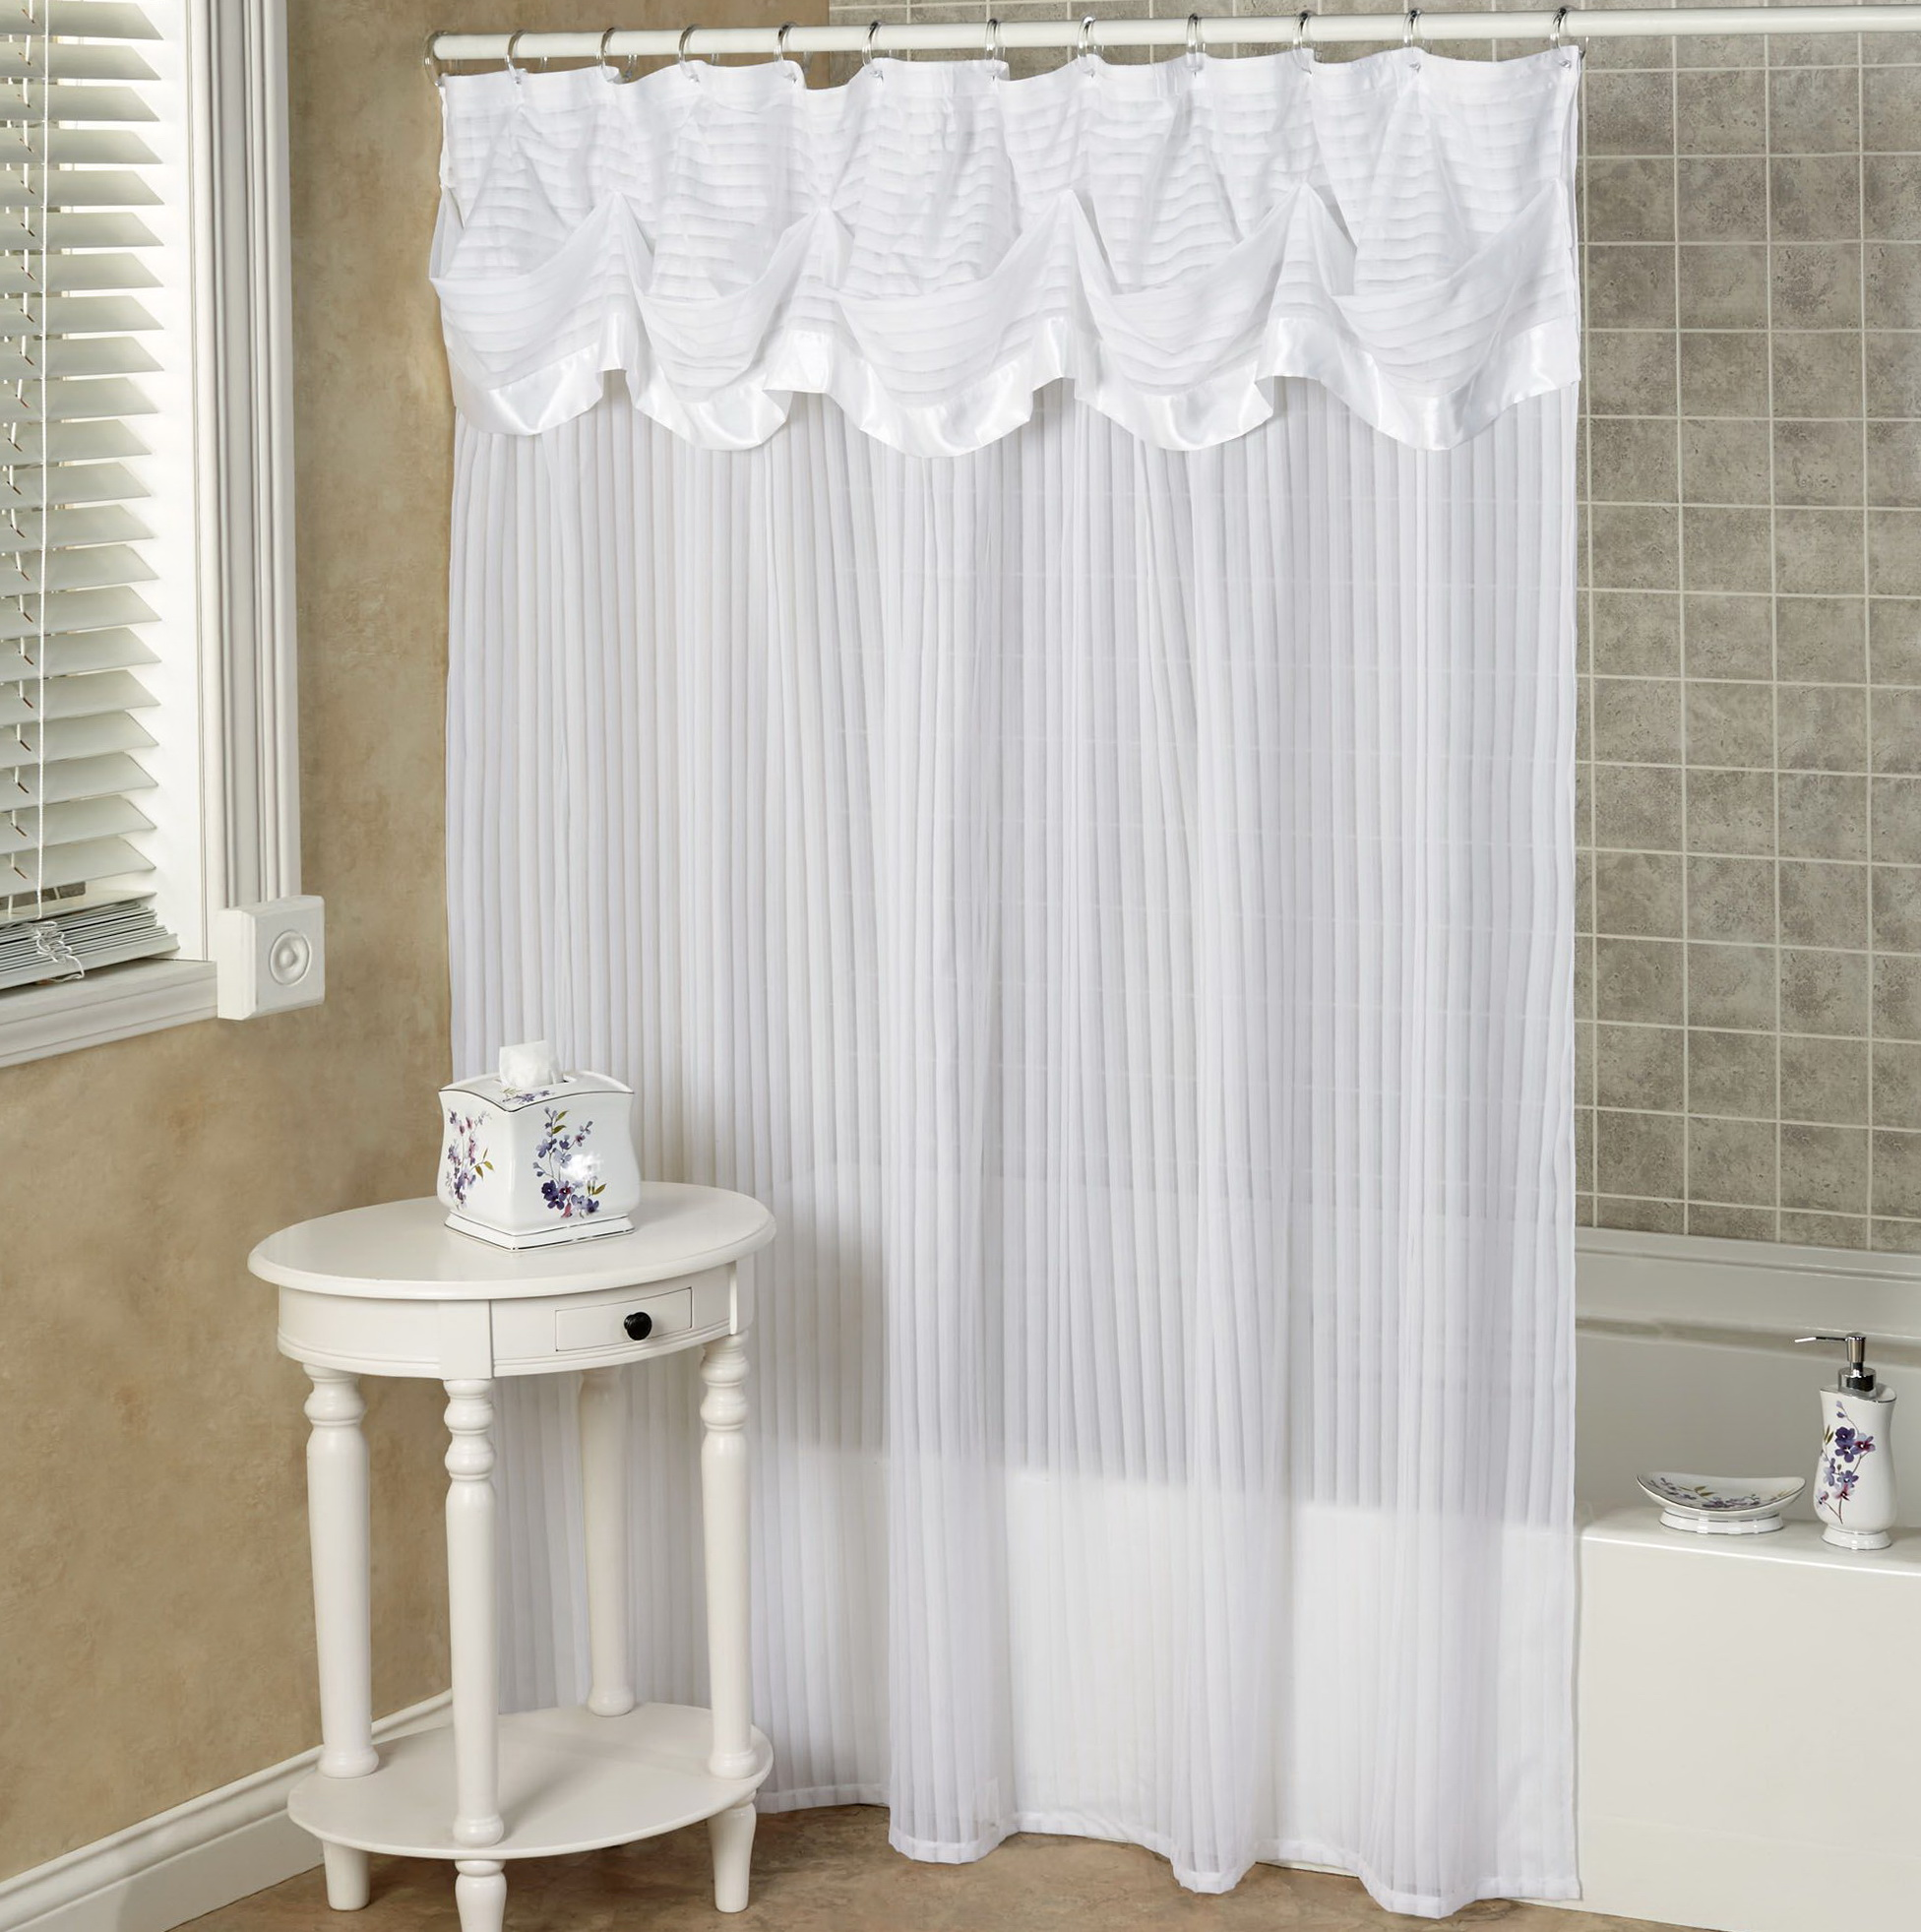 Luxury Shower Curtains With Valance Home Design Ideas